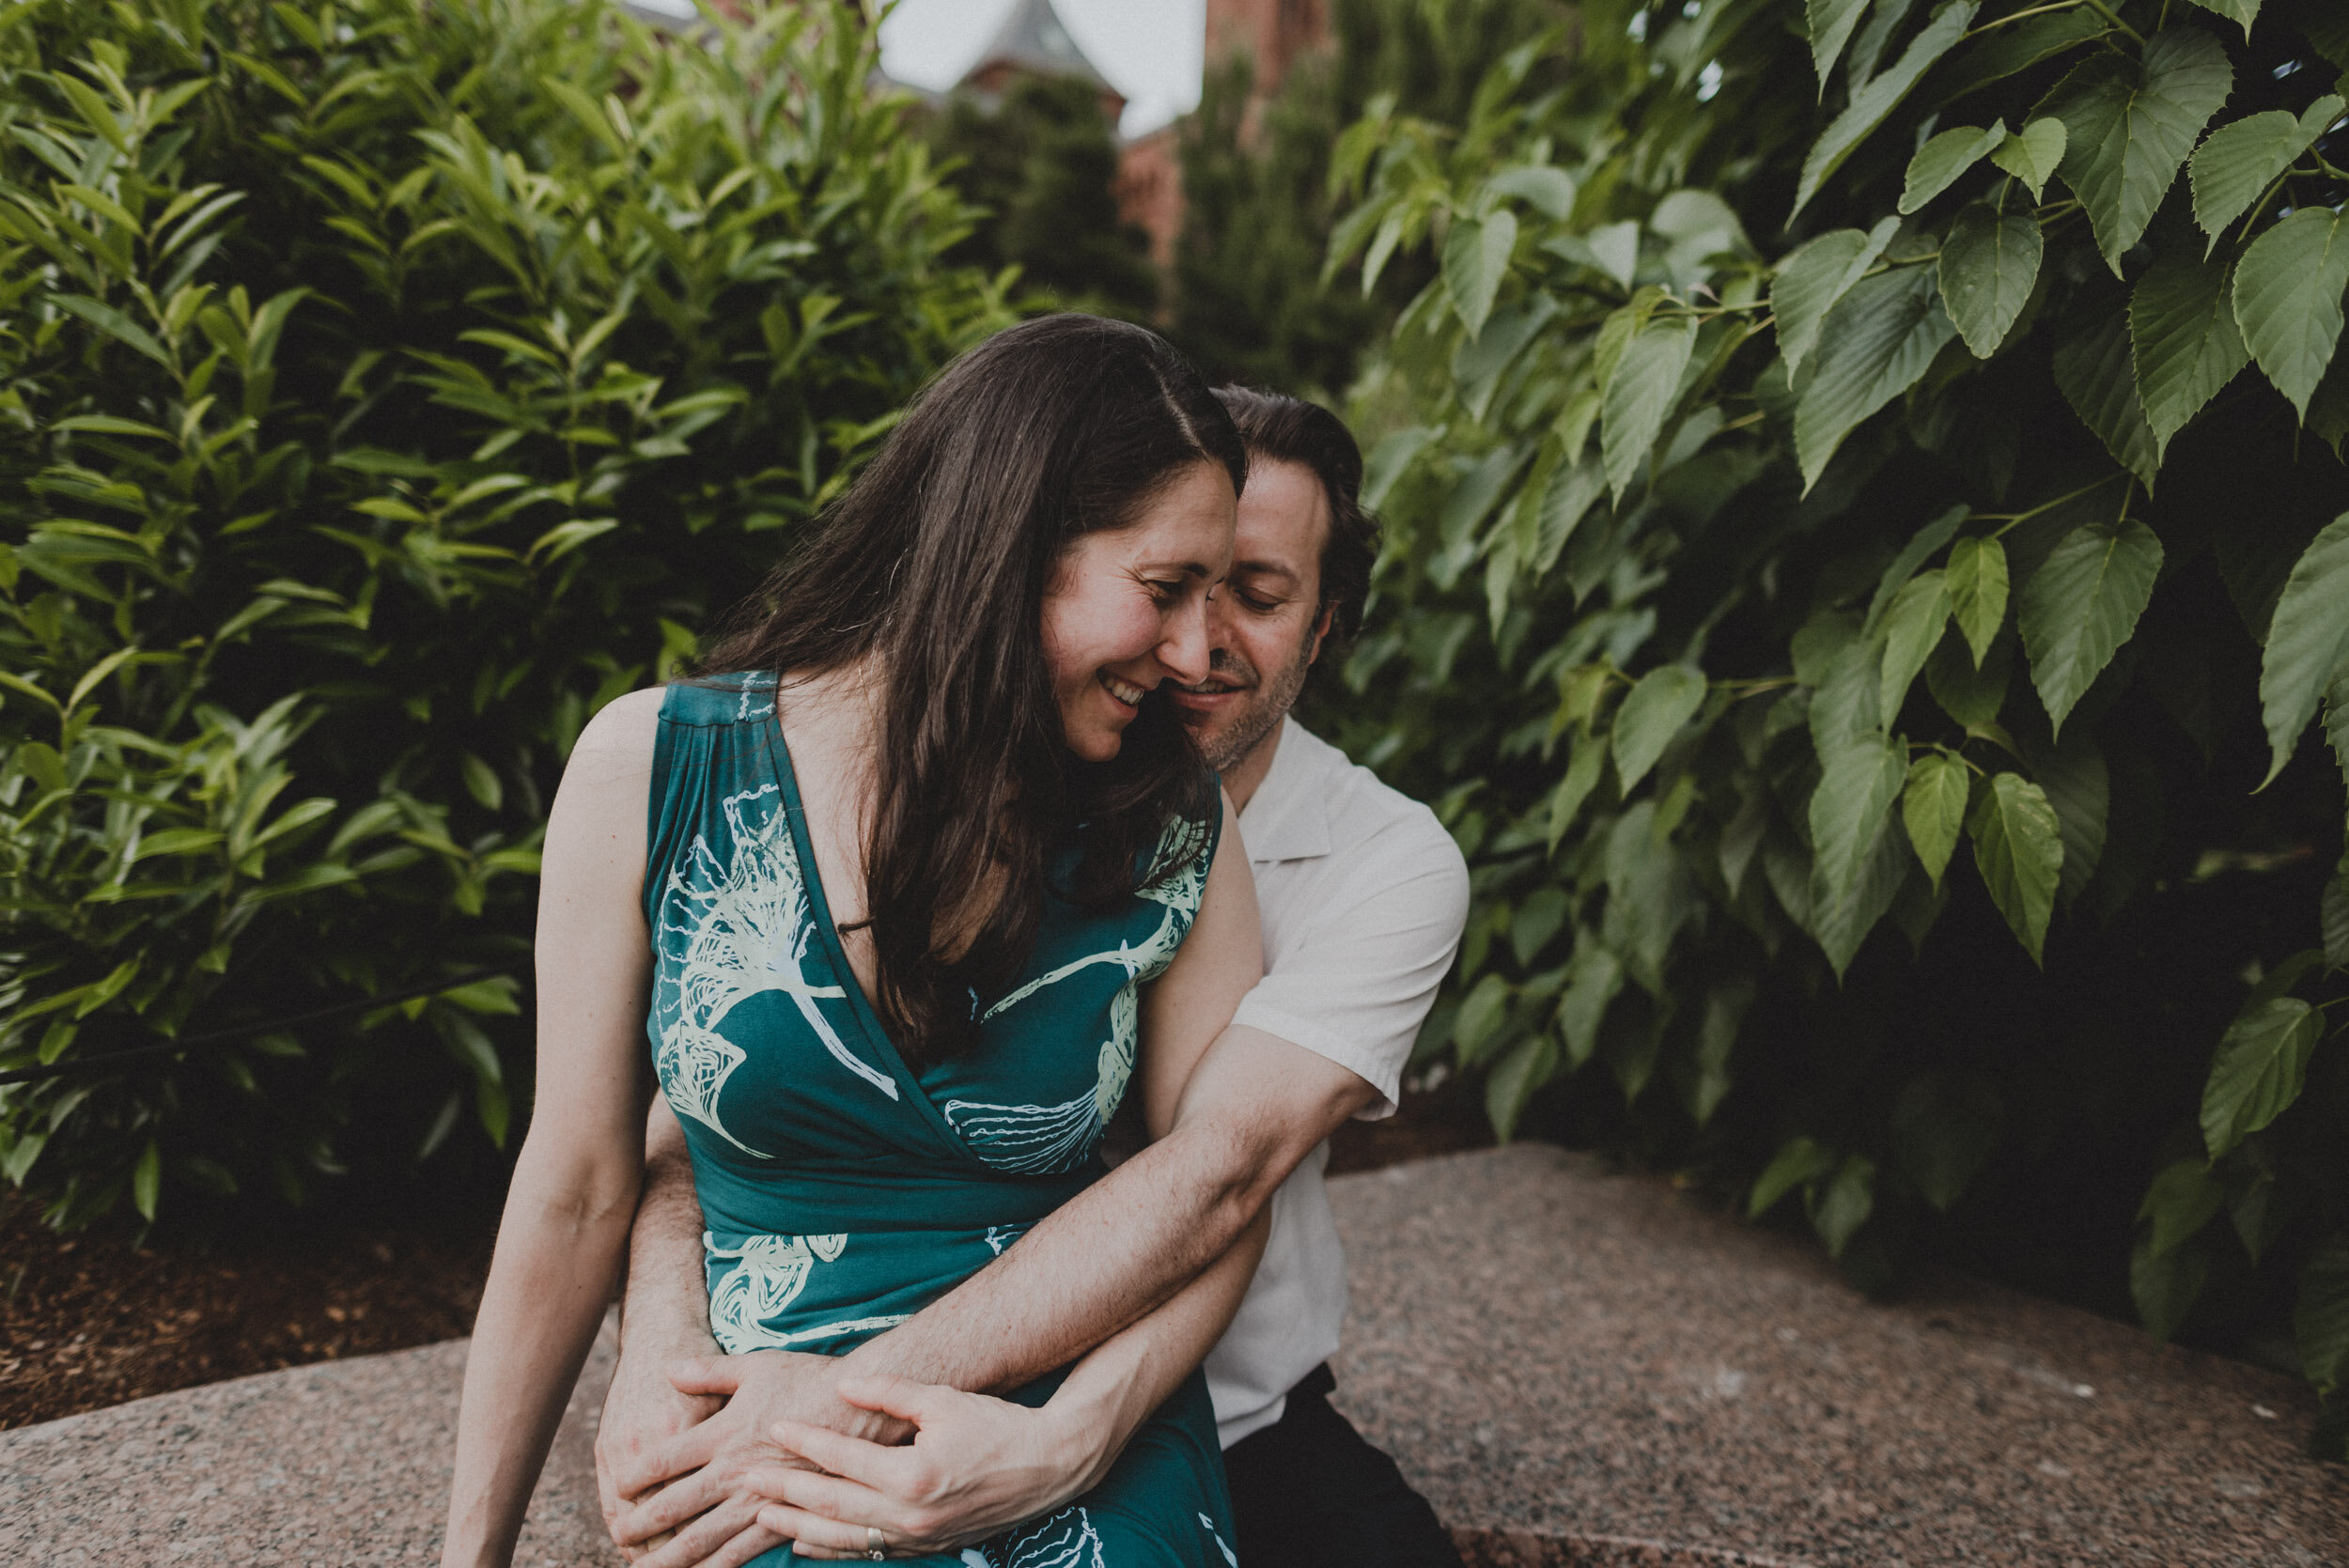 Moongate_Garden_Engagement-7.jpg